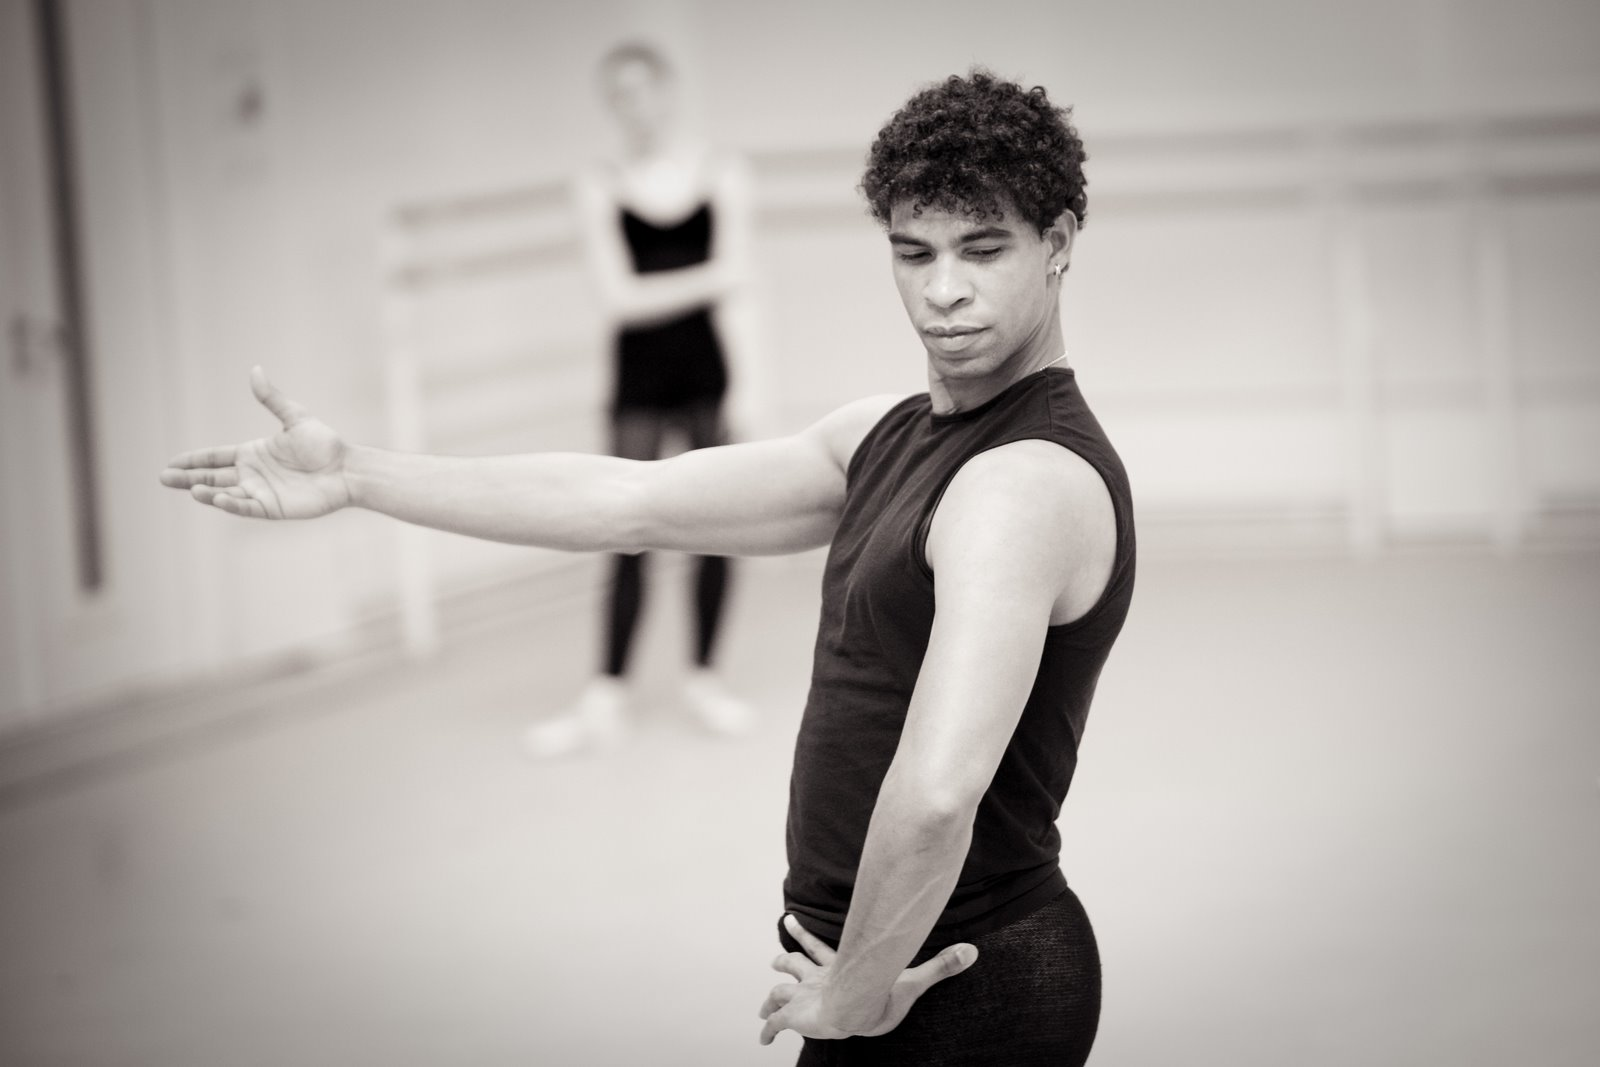 Carlos Acosta holds out his arm